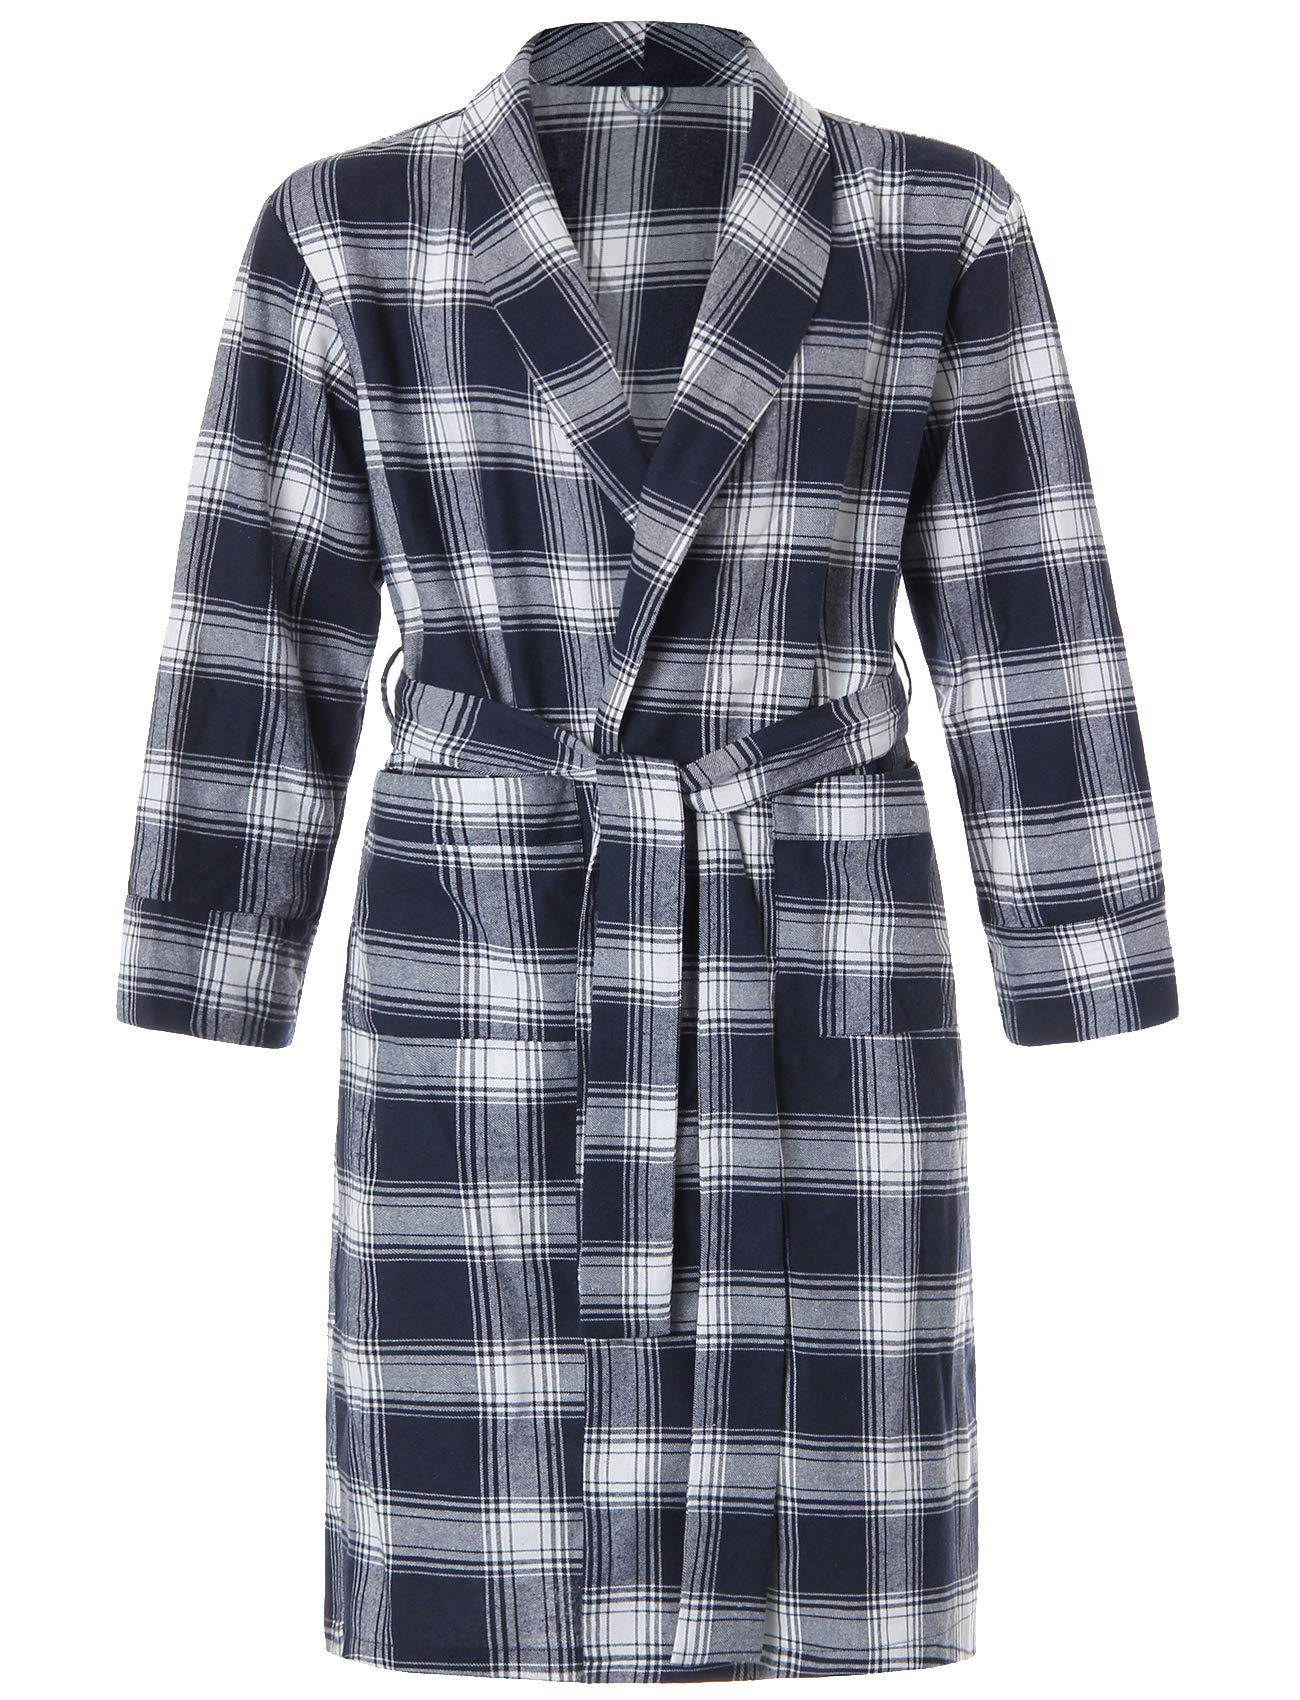 Image of Comfy Navy Blue Plaid Flannel Robe for Men - See More Colors